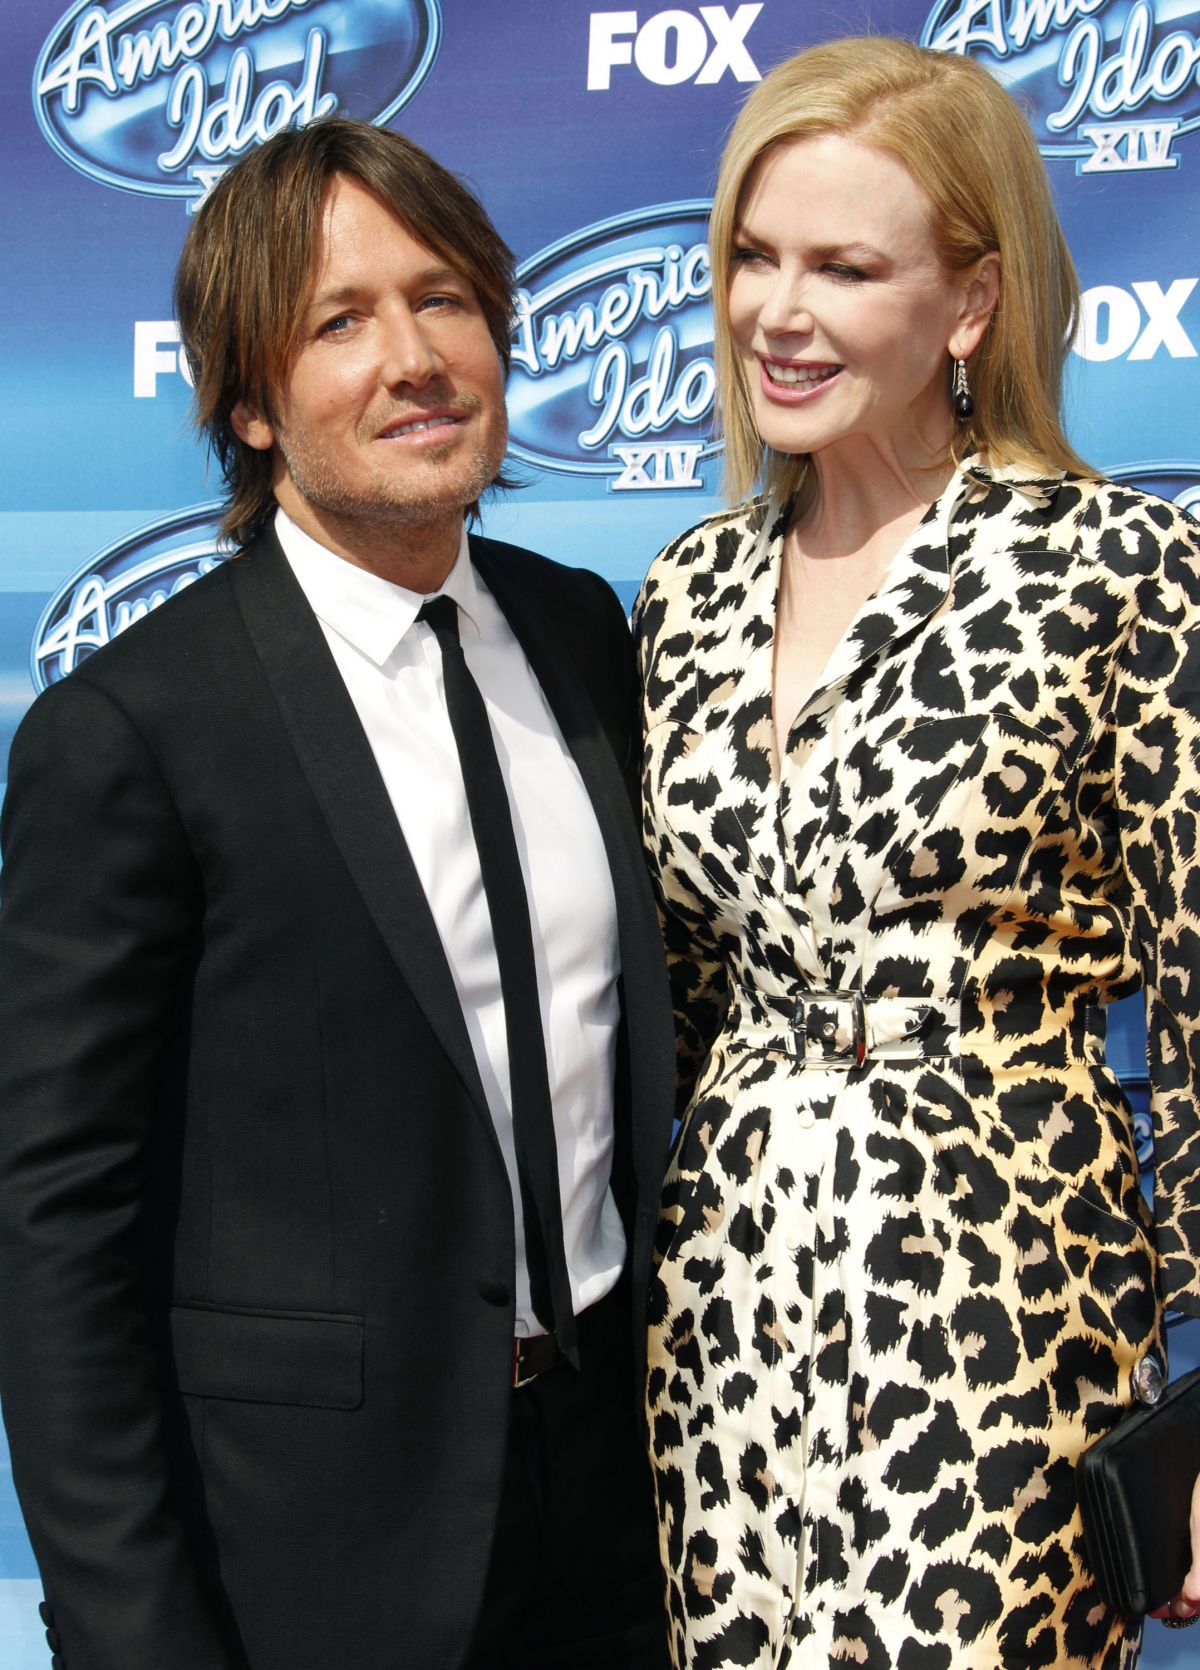 NICOLE KIDMAN at American Idol XIV Grand Finale in Hollywood